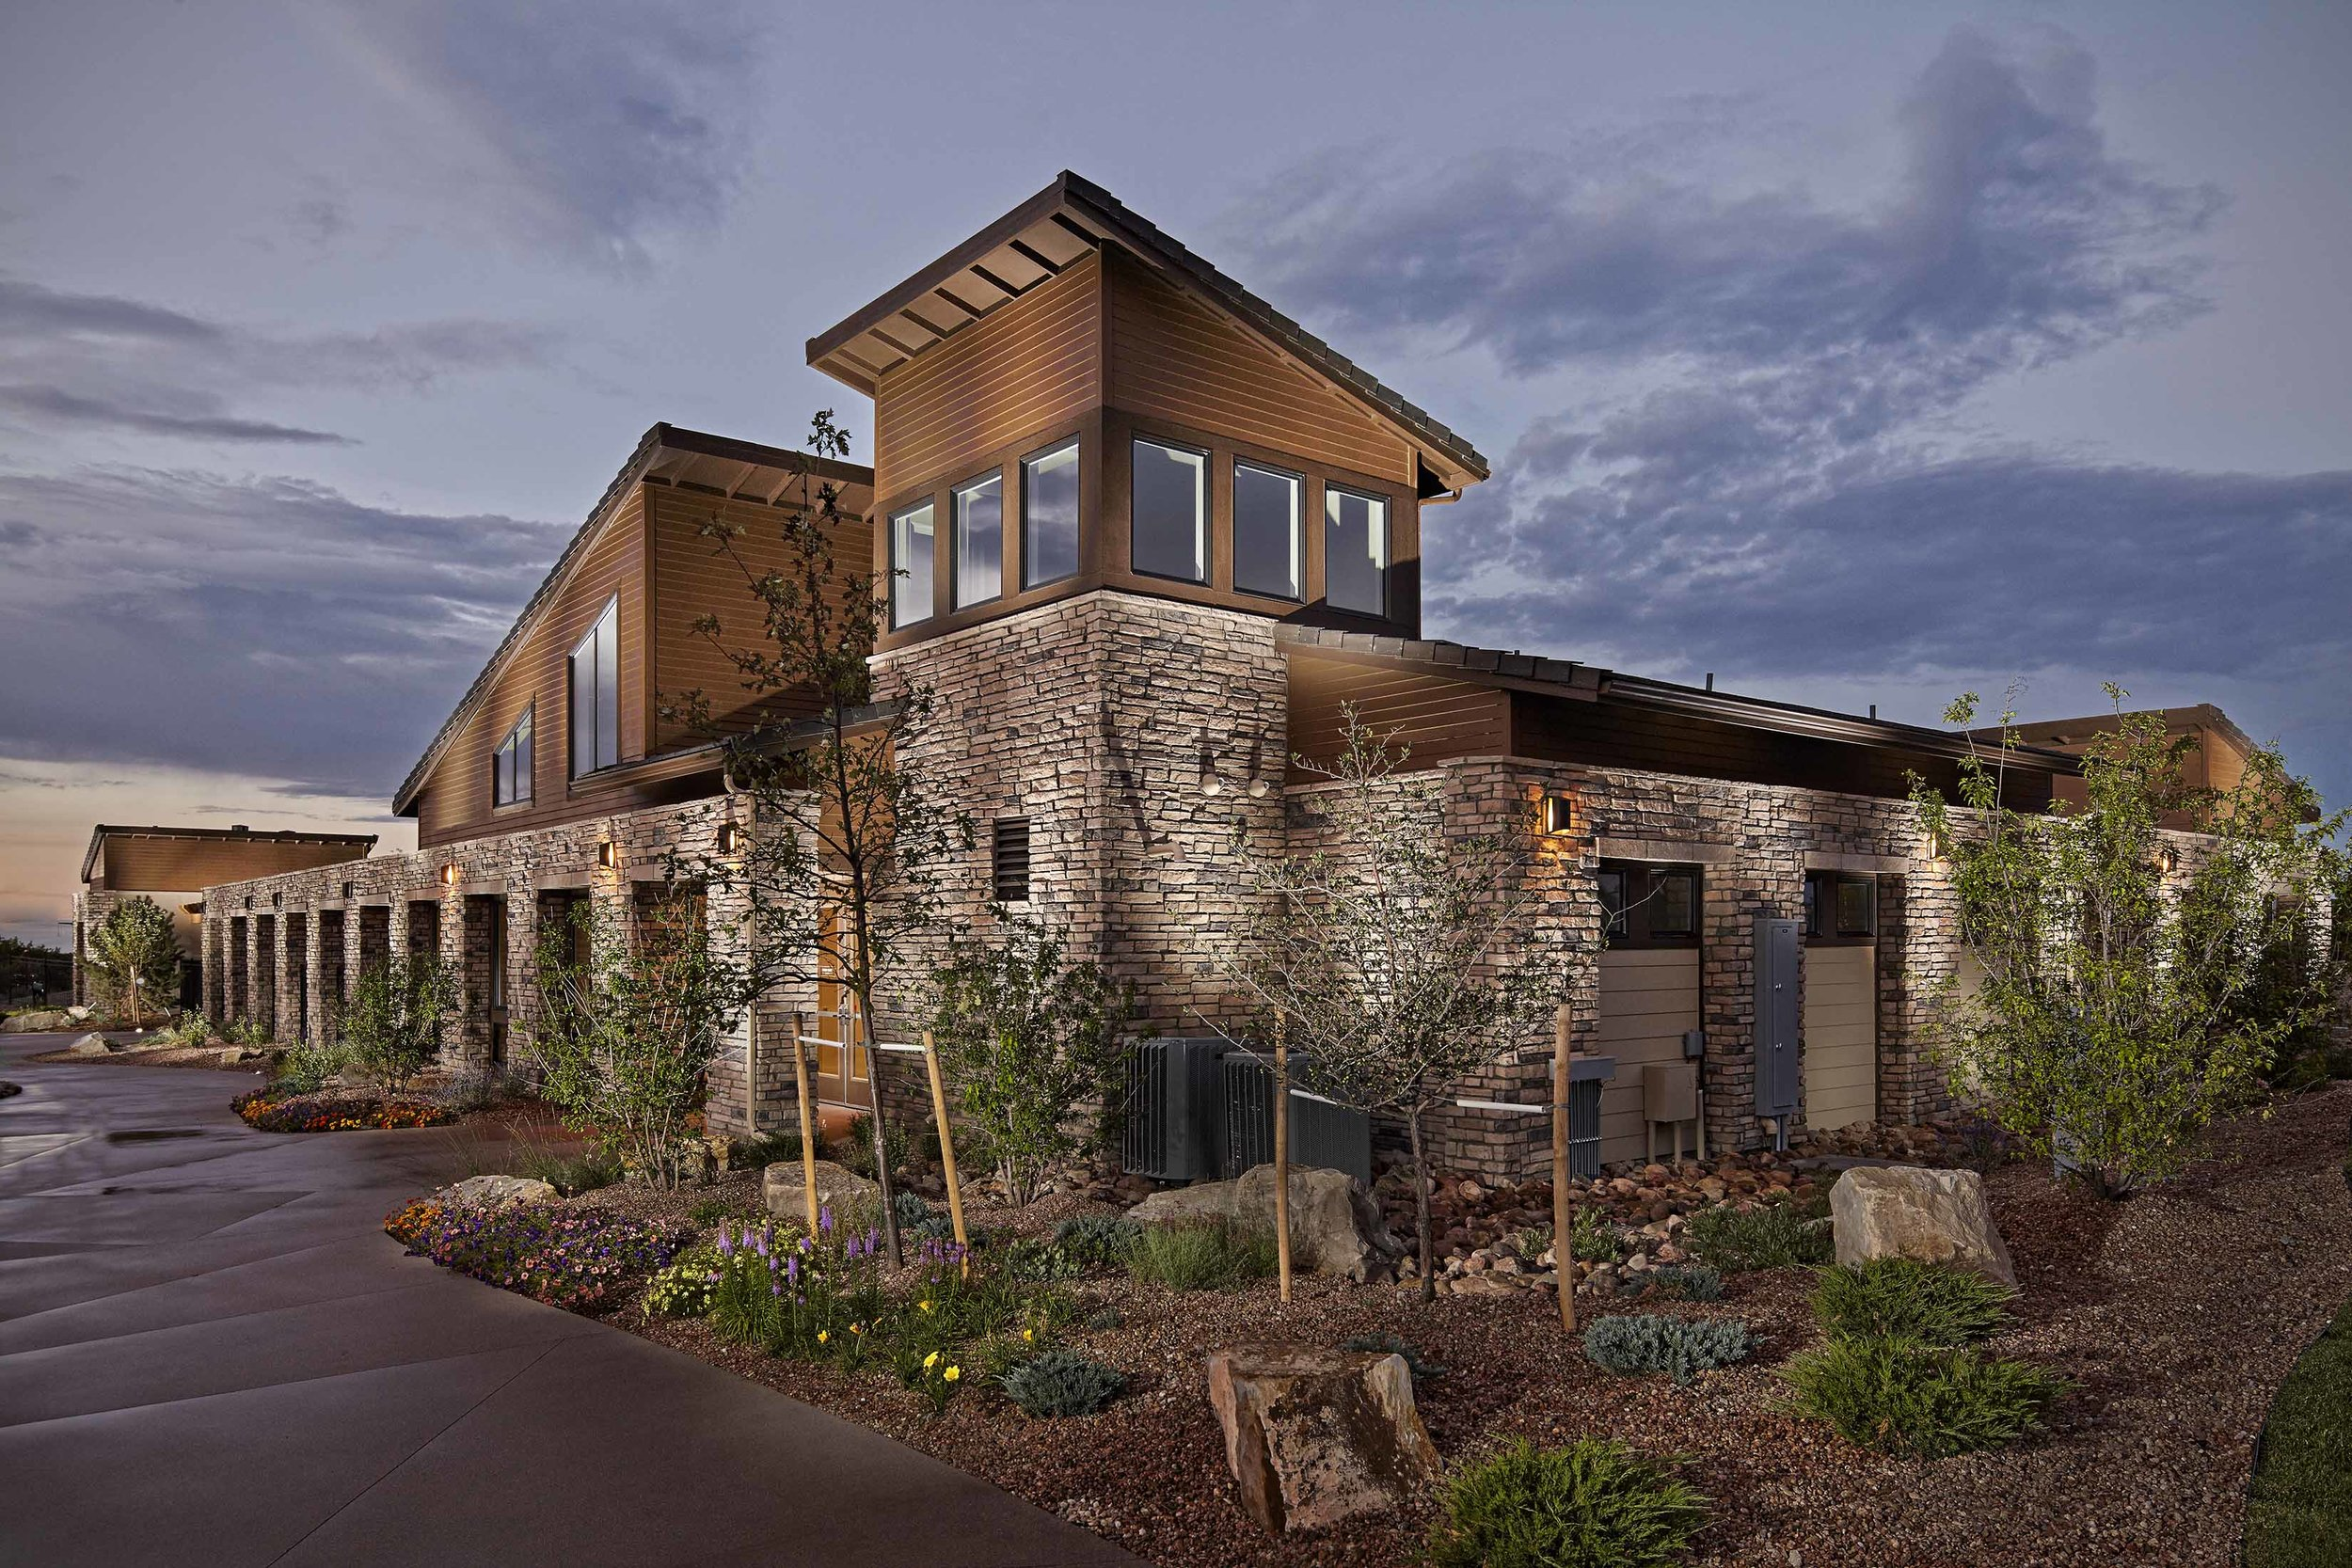 Terrain Swim Club   | Castle Rock, Colorado     AWARDS   +  2014 Gold Nugget  for Best Clubhouse   +   2014 National Gold Award  for Best Community Facility